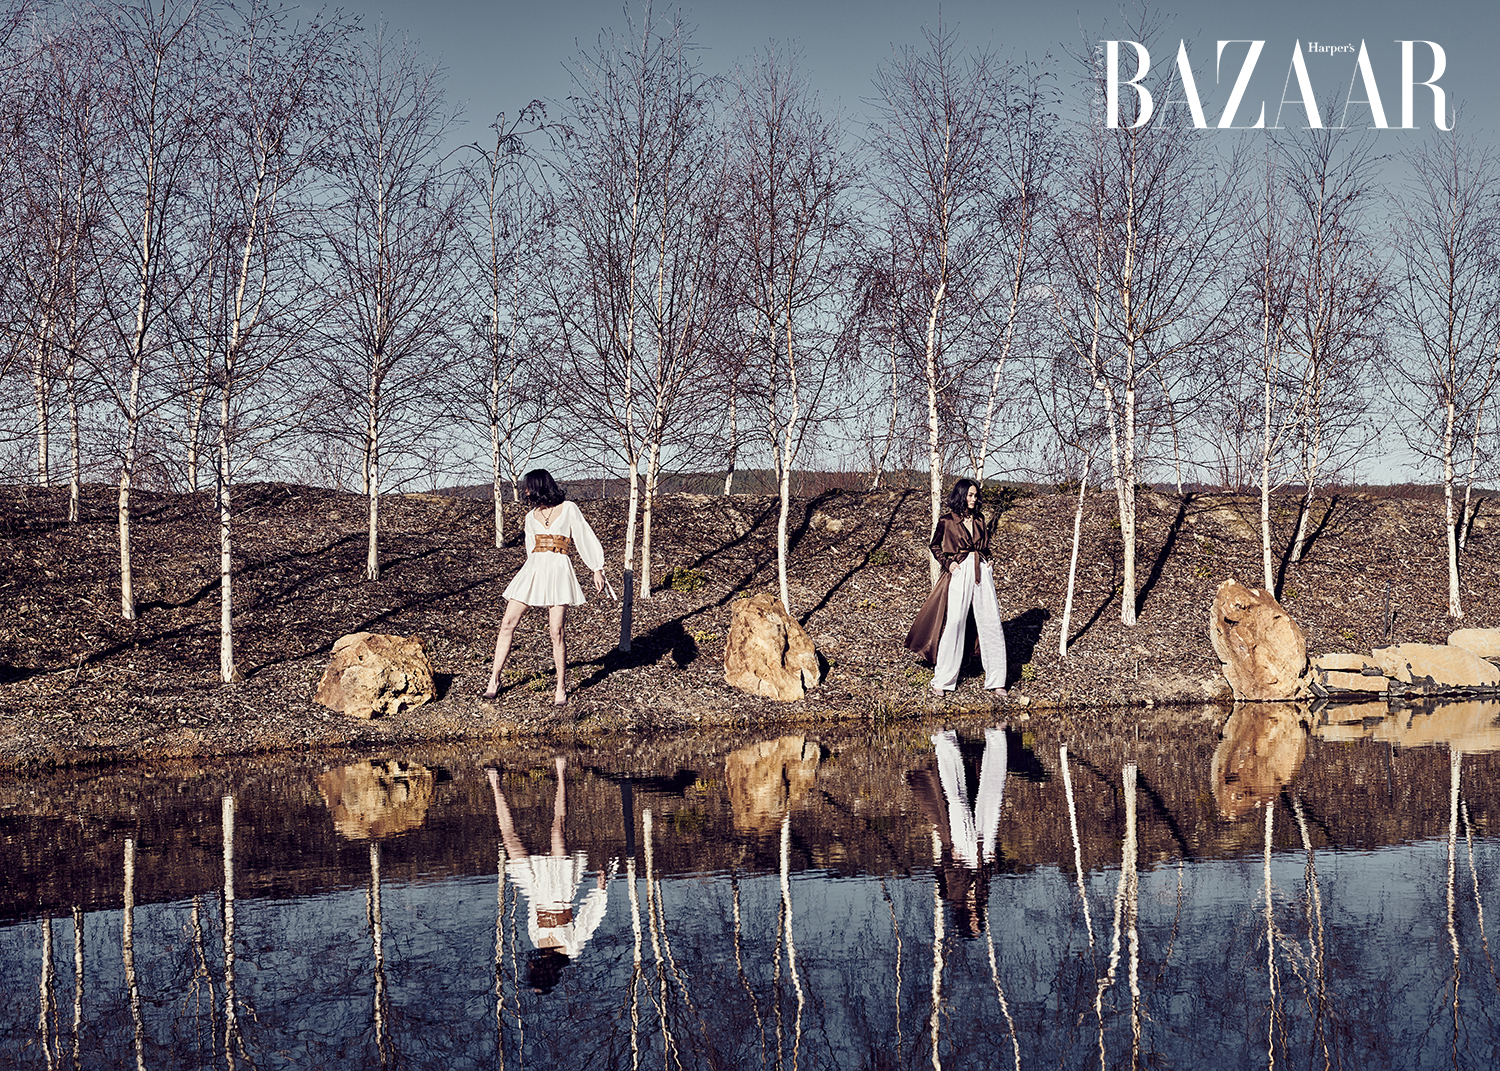 Mahalia Handley creatively directs for Harper's Bazaar Vietnam